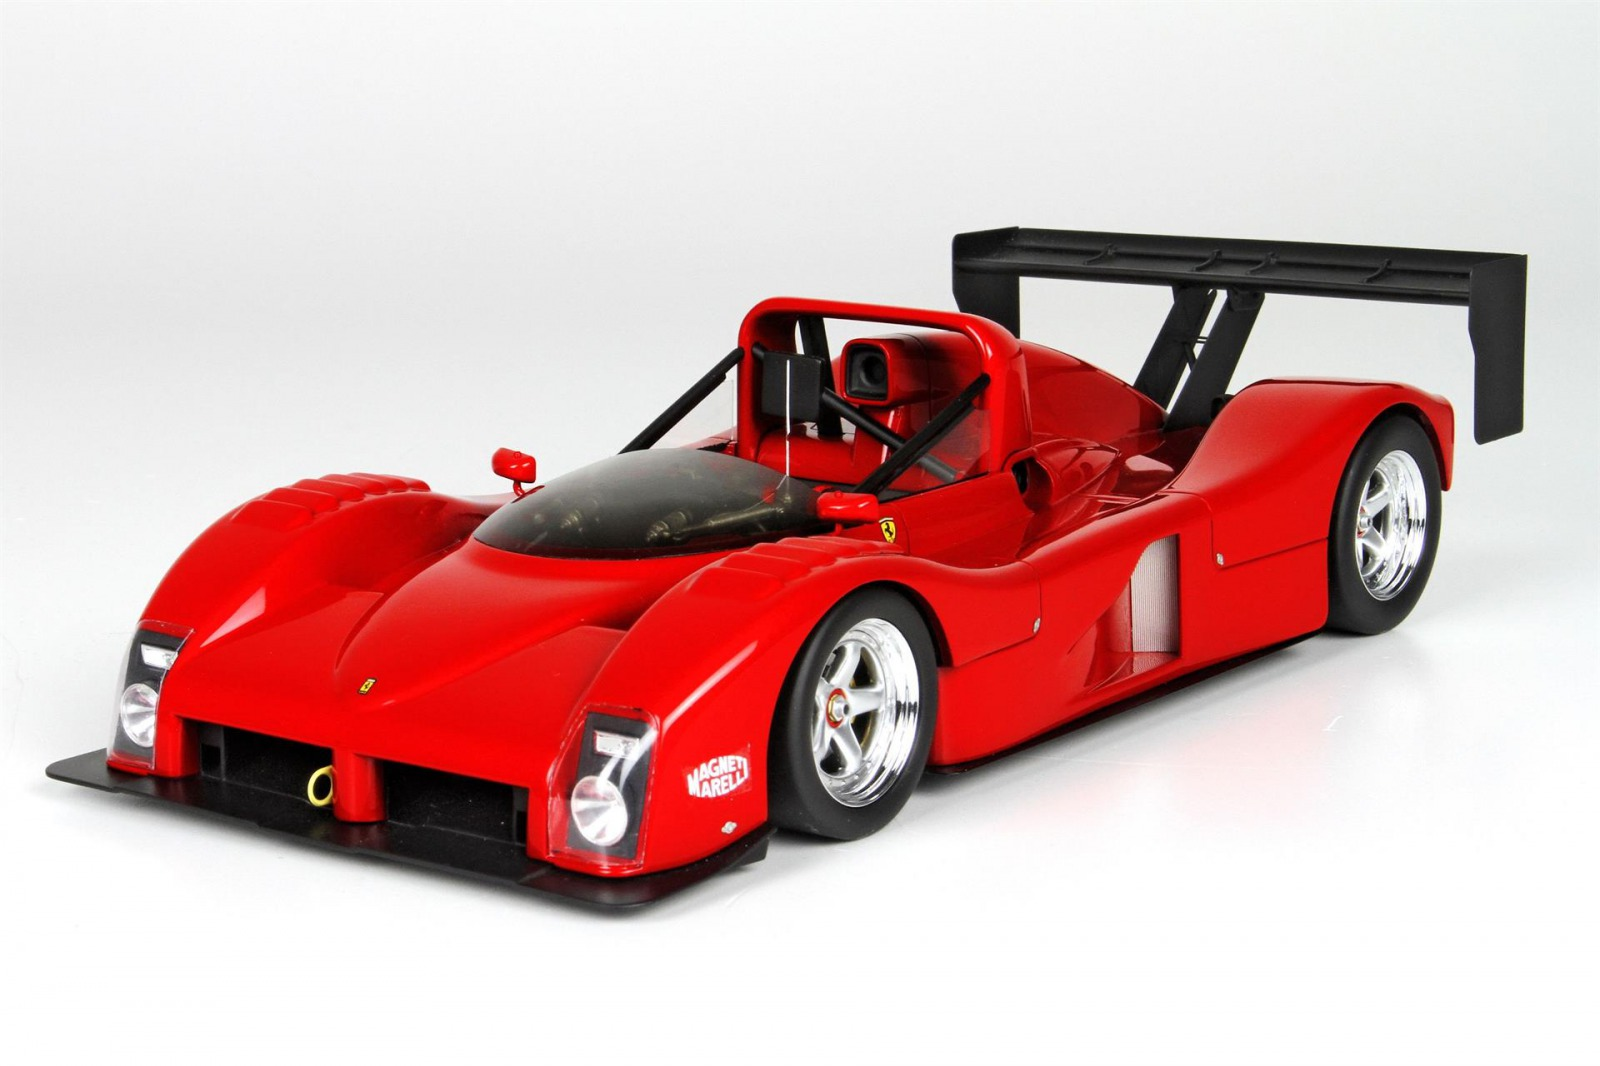 BBR 1:18 1994年 フェラーリ 333 SP 1994 FERRARI 333 SP 1/18 BBR NEW